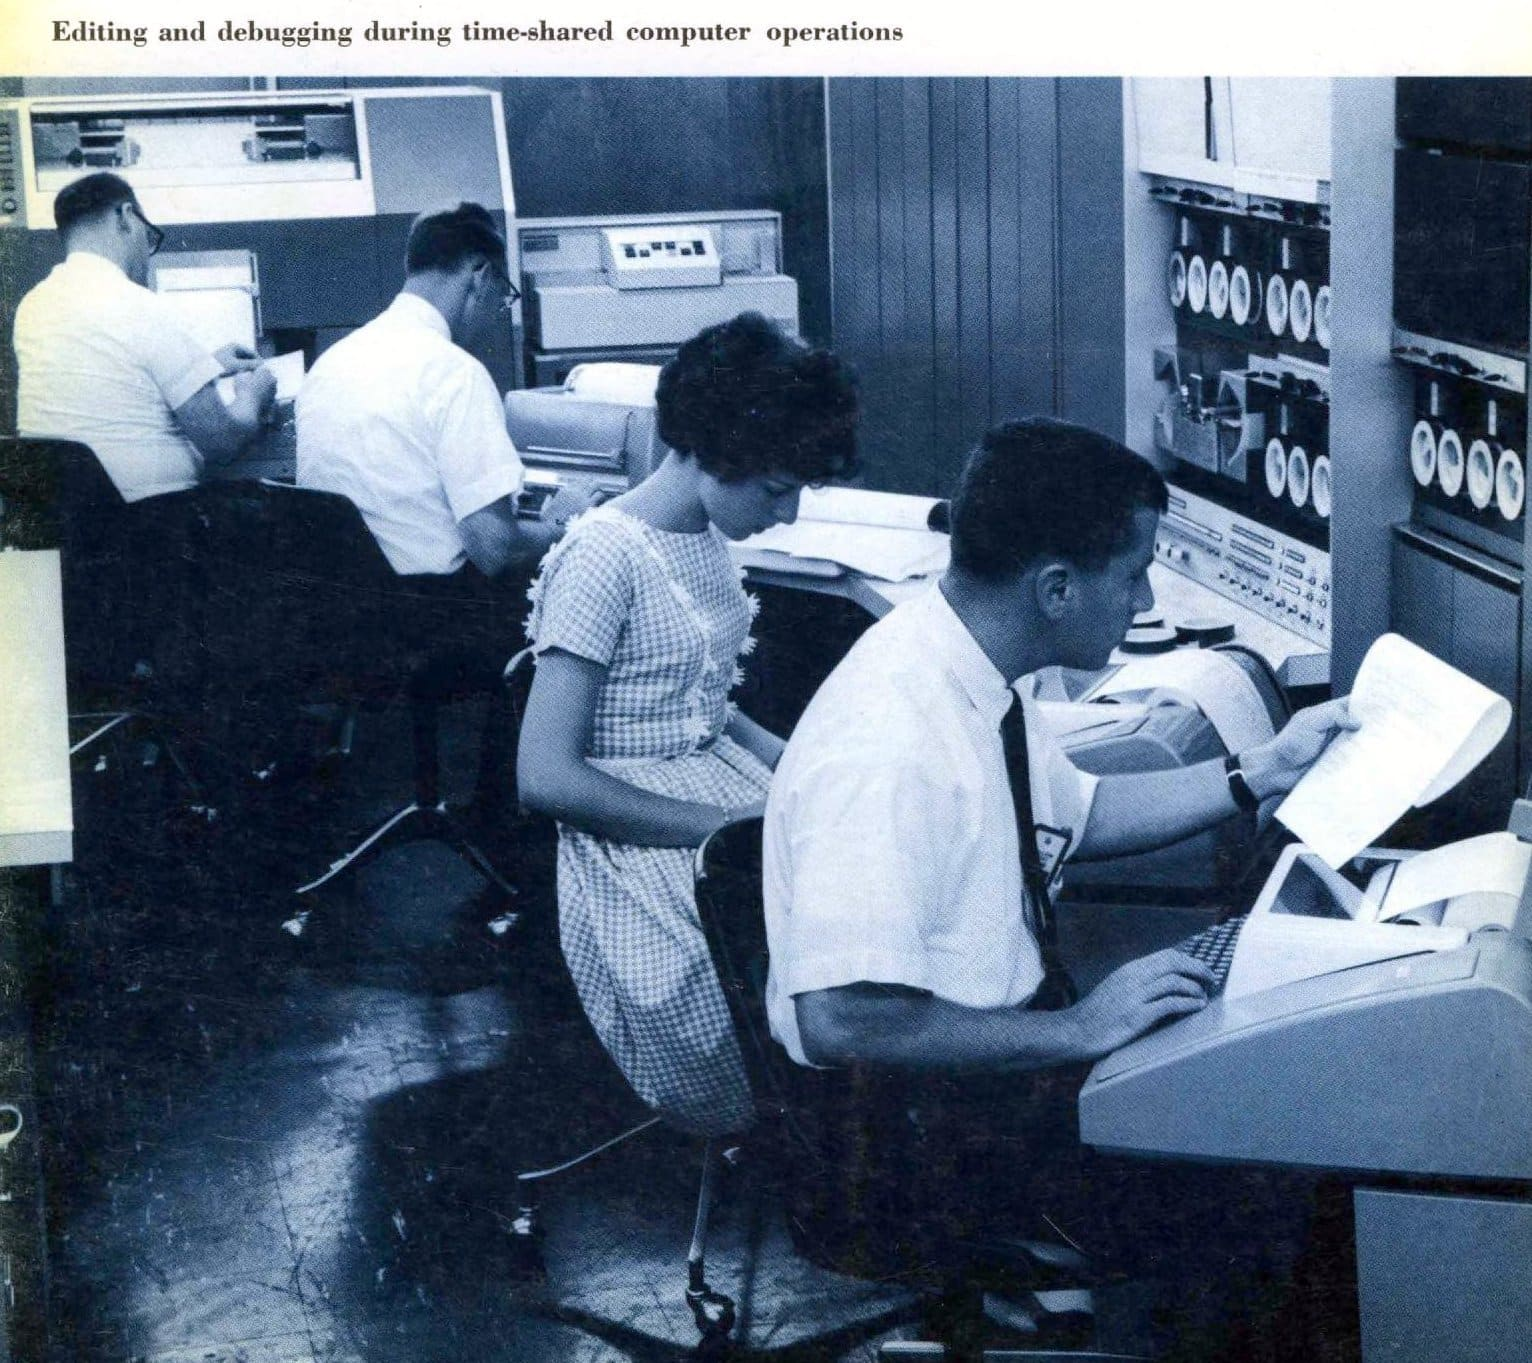 Editing and debugging timeshared computer operations (1965)